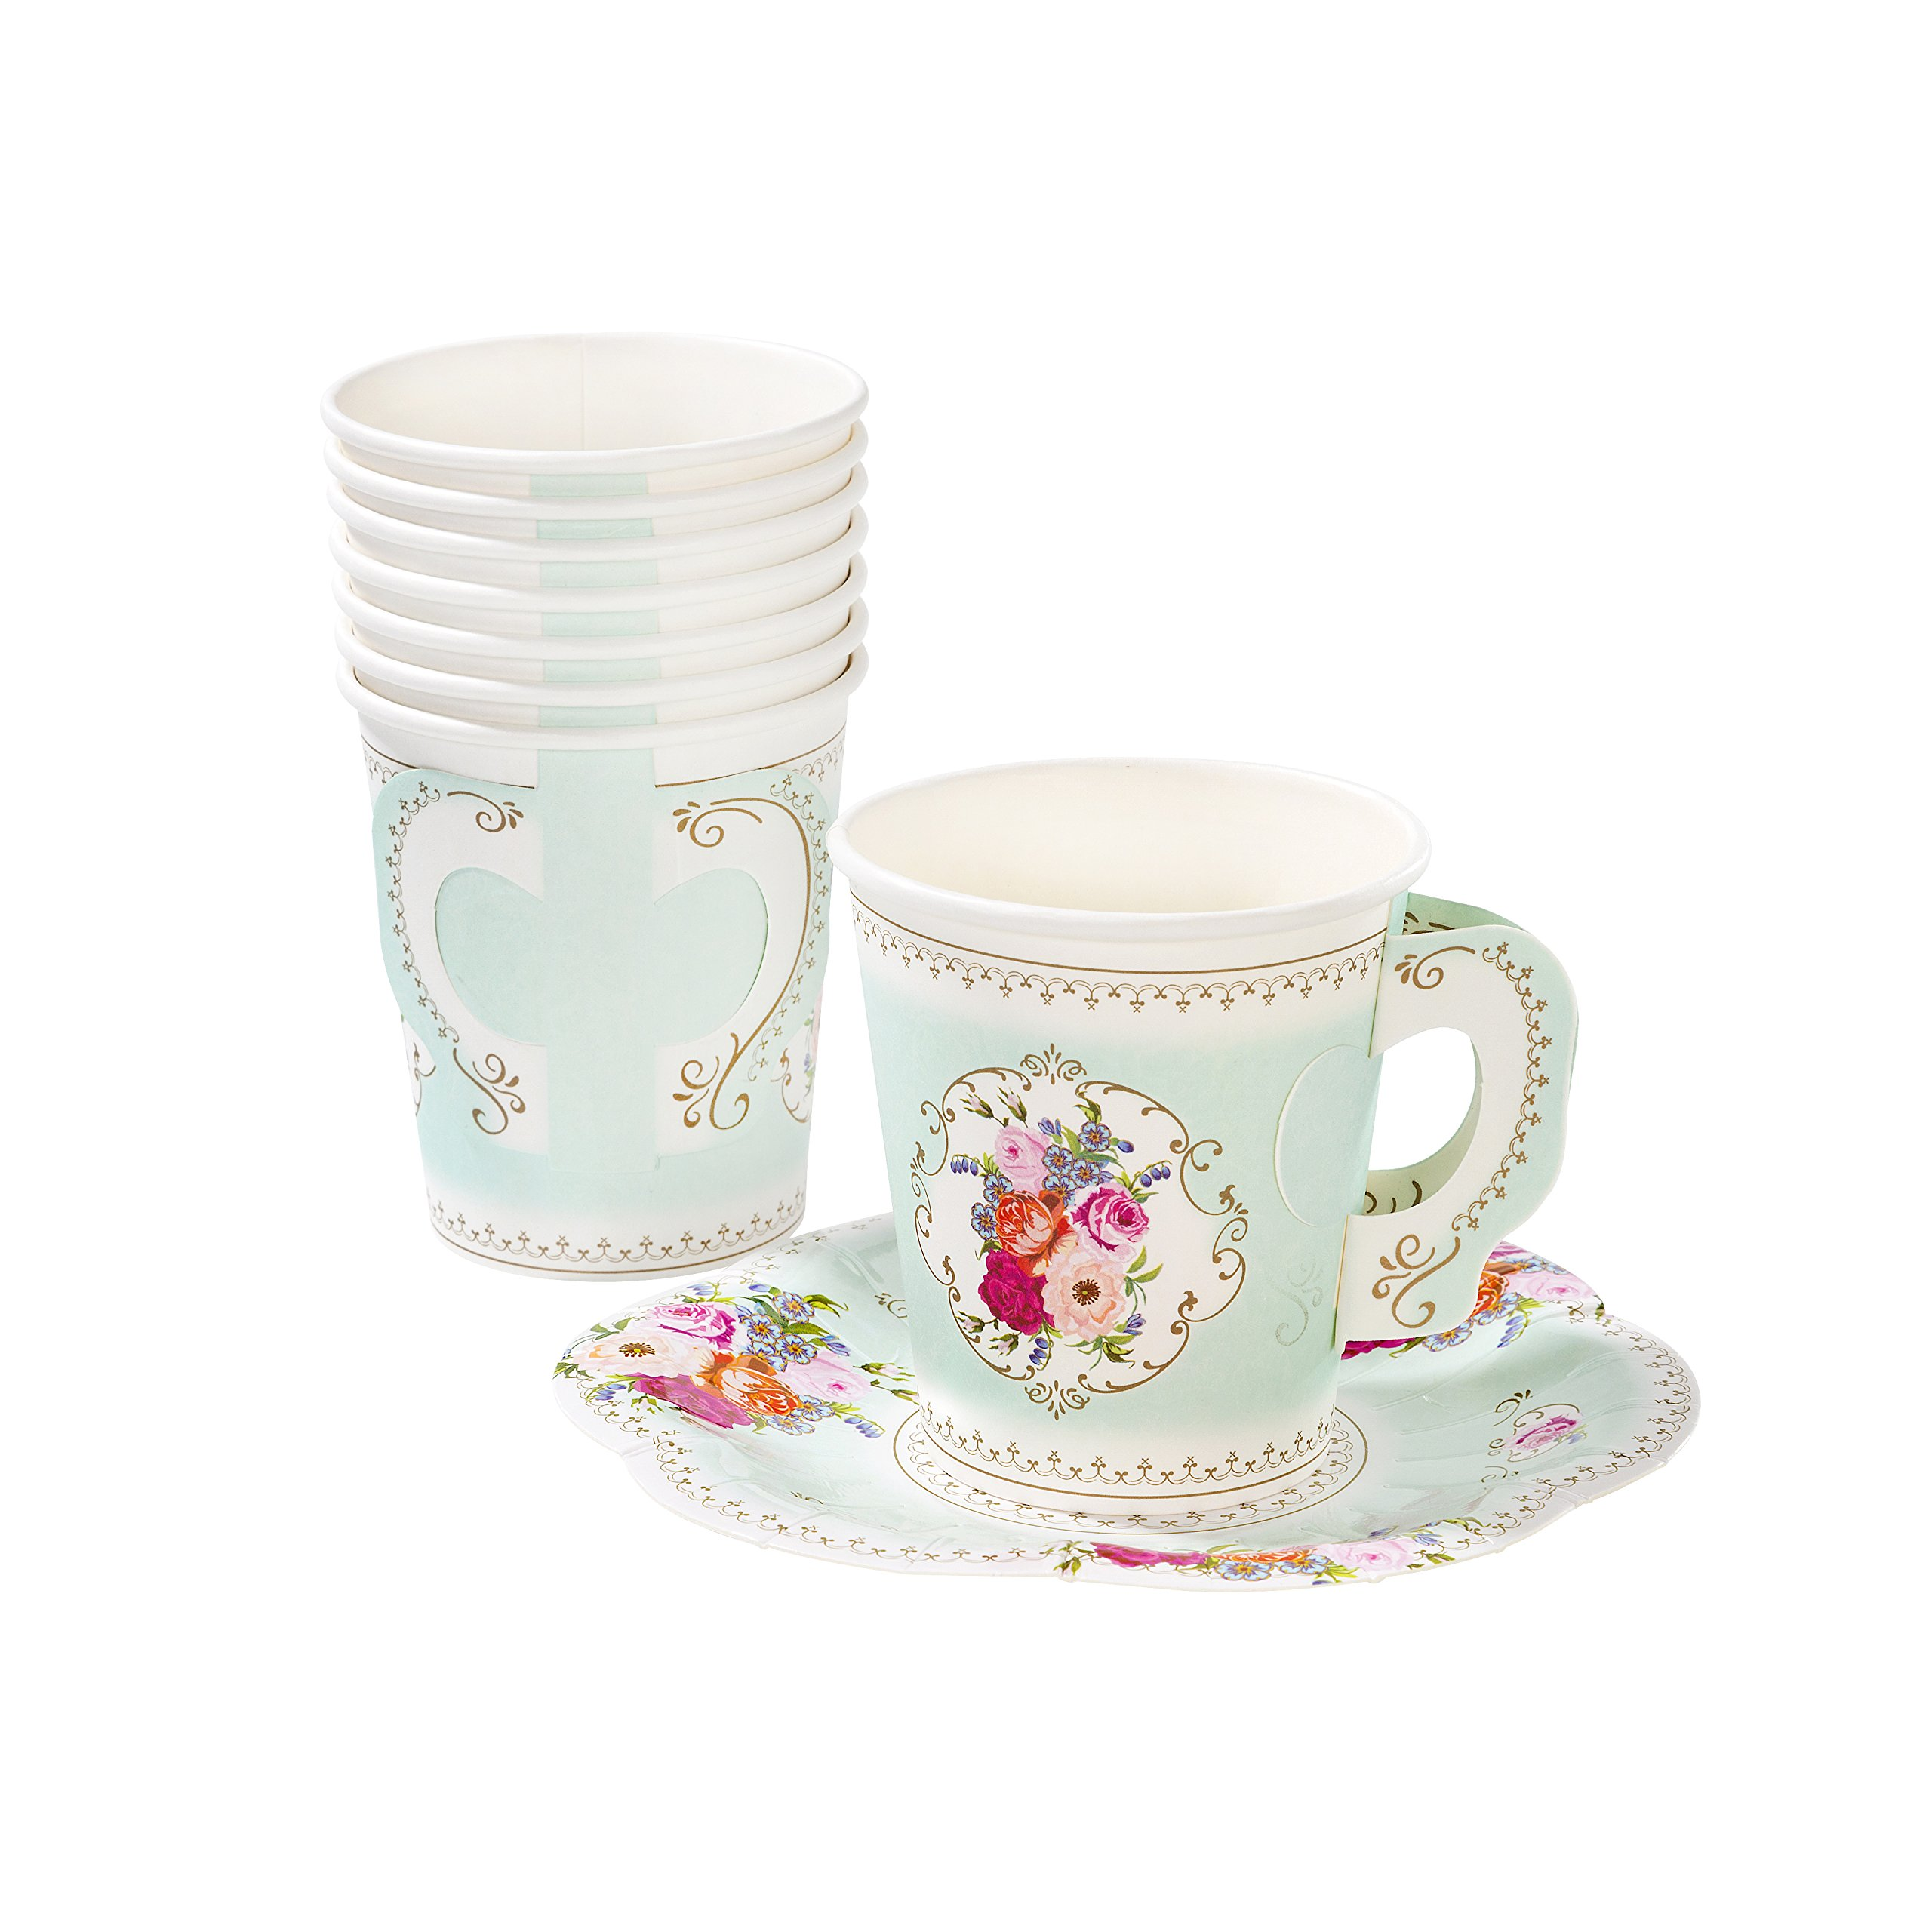 Talking Tables Truly Scrumptious Vintage Floral Paper Tea Cups with Handles and Saucers for a Tea Party or Birthday (12 Pack) by Talking Tables